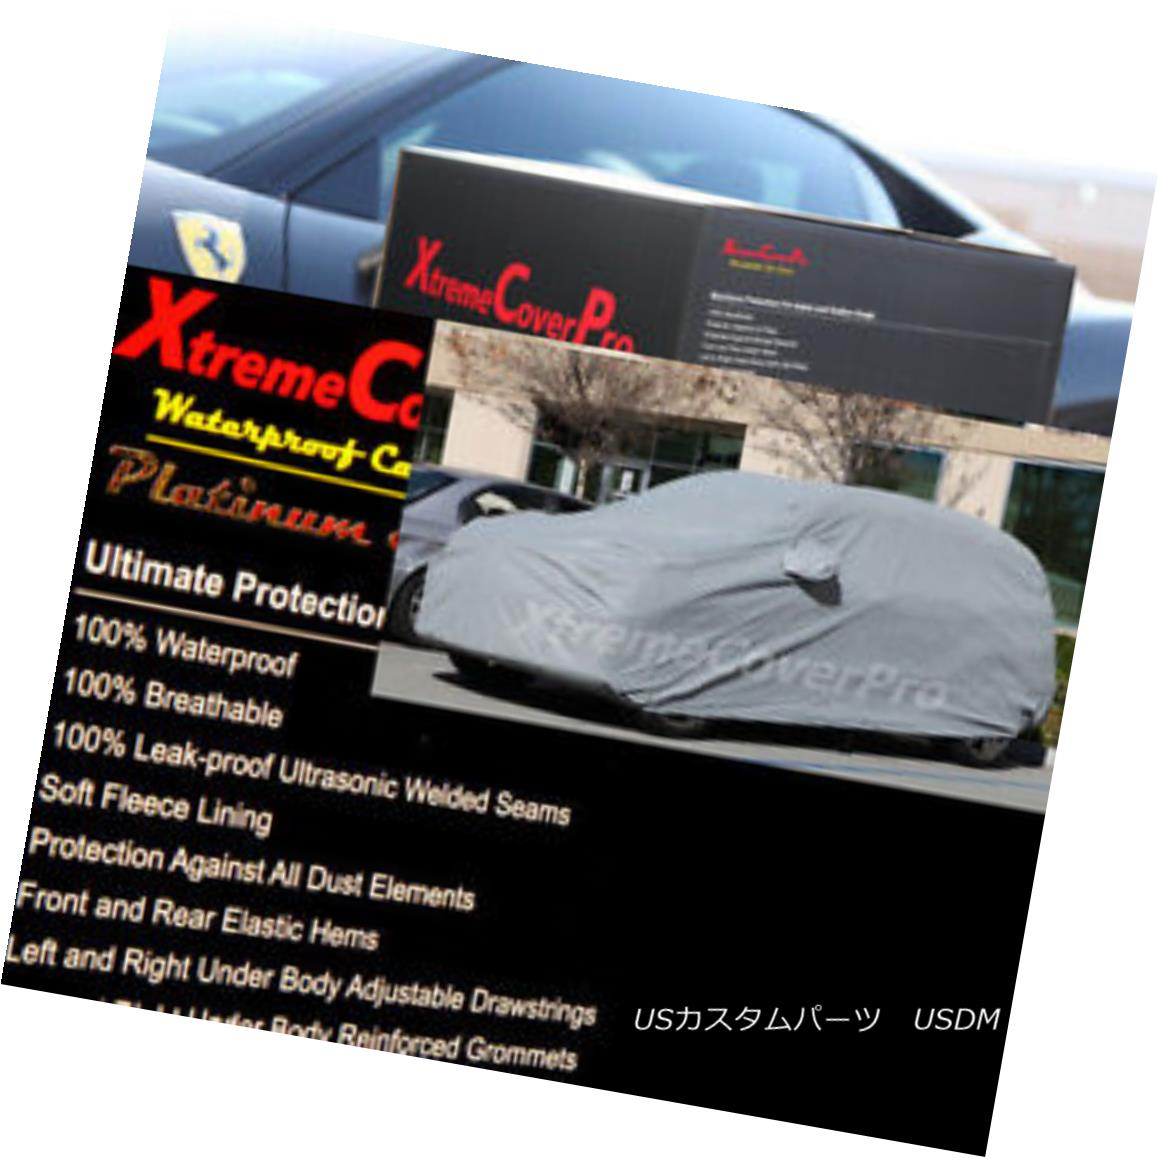 カーカバー 2013 Lincoln NAVIGATOR non-L Waterproof Car Cover w/MirrorPocket 2013 Lincoln NAVIGATOR MirrorPocketつきの非L防水カーカバー